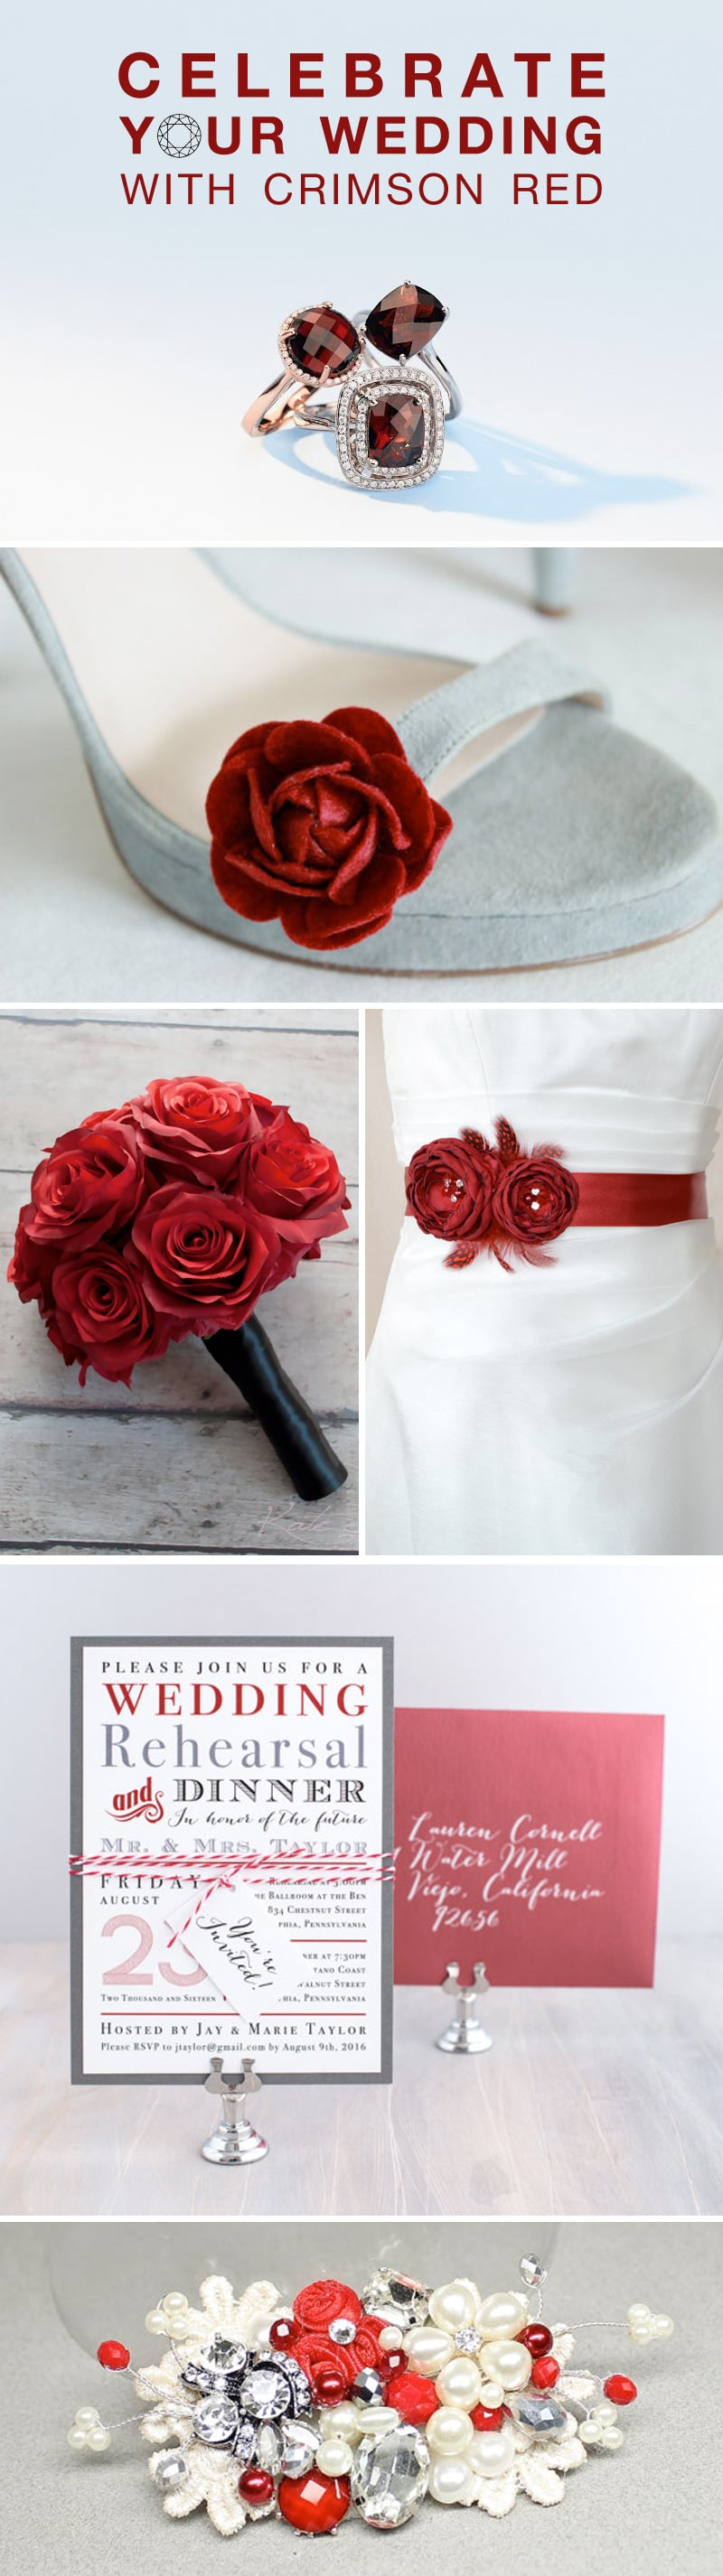 Crimson Red Wedding Inspiration Board with Touches of Garnet Gems